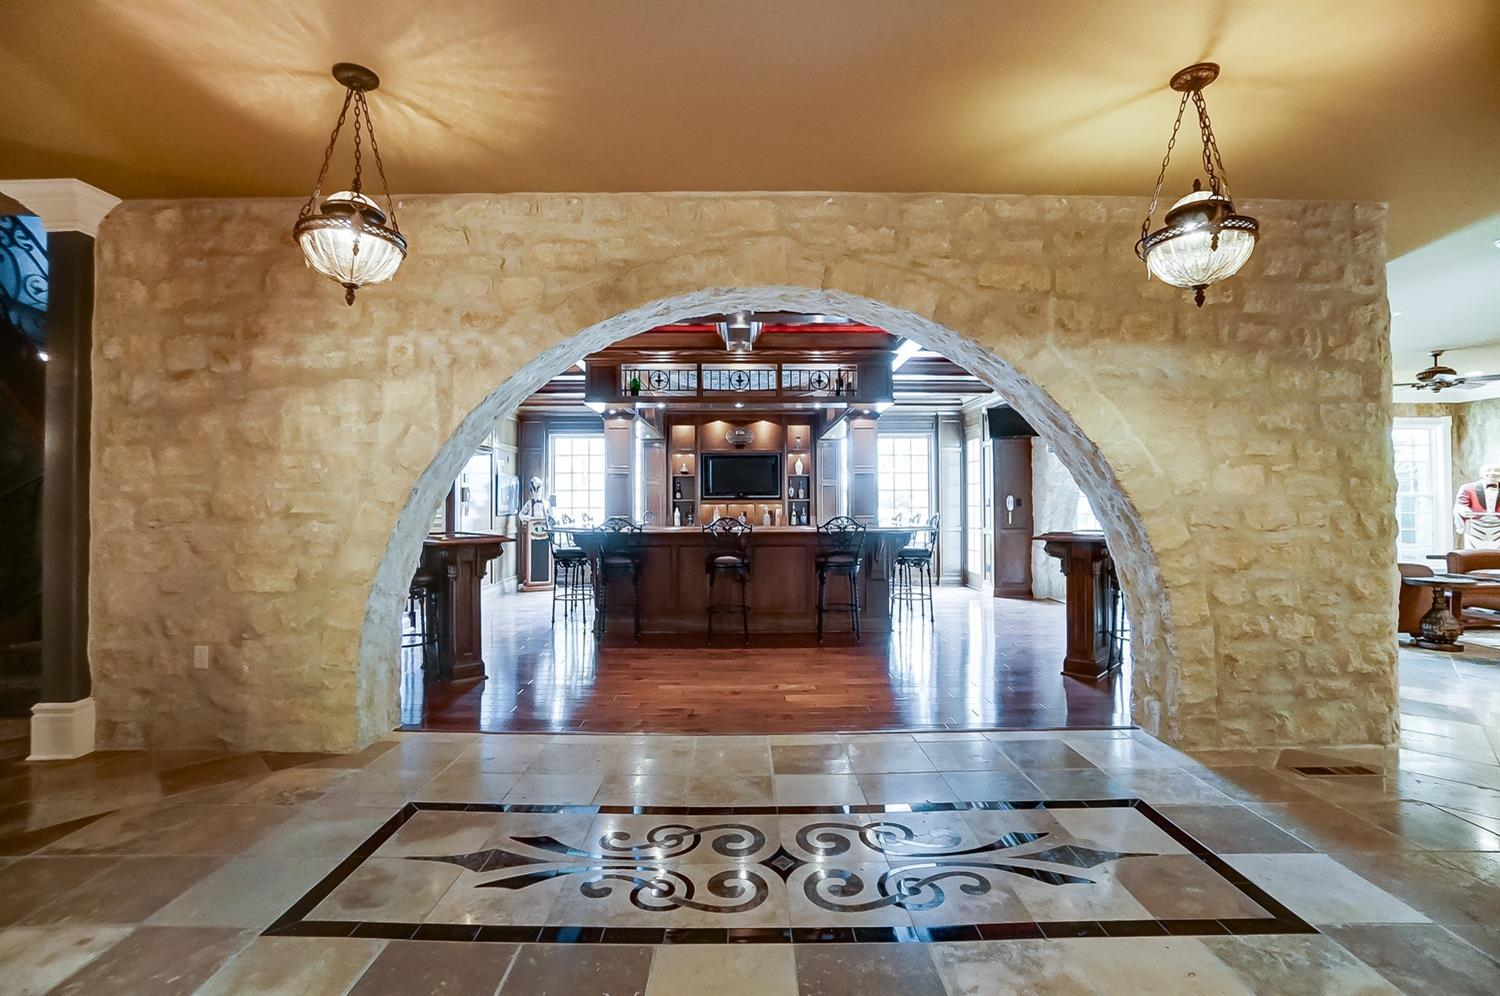 The home boasts a full-size Old World tavern with large arched stone entryways.